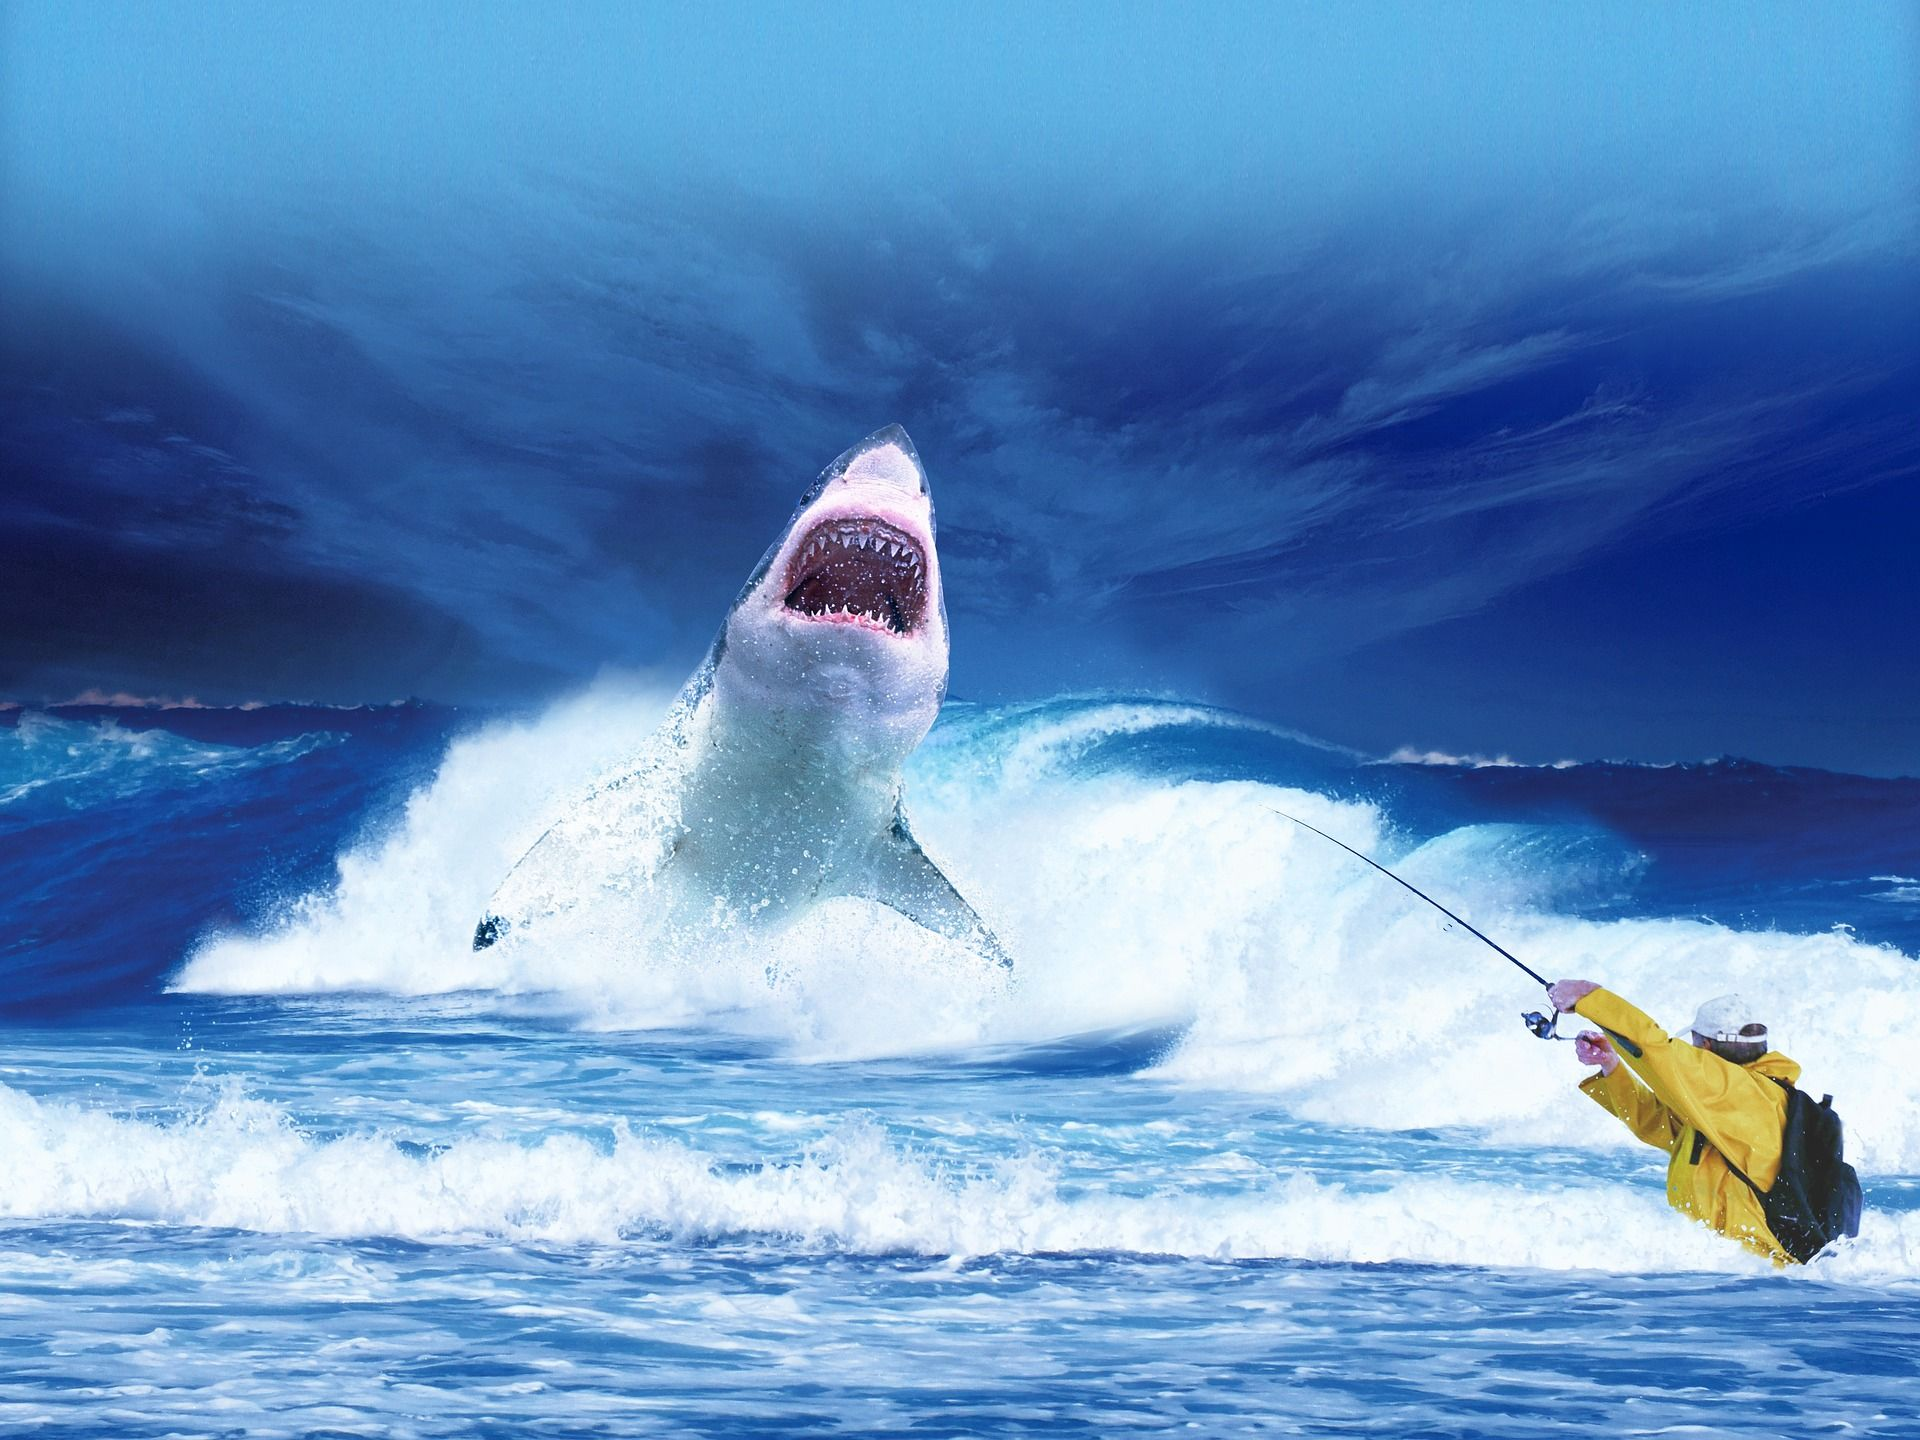 Shark In Blue Ocean Fishing By Fisherman Funny Wallpaper 19201440